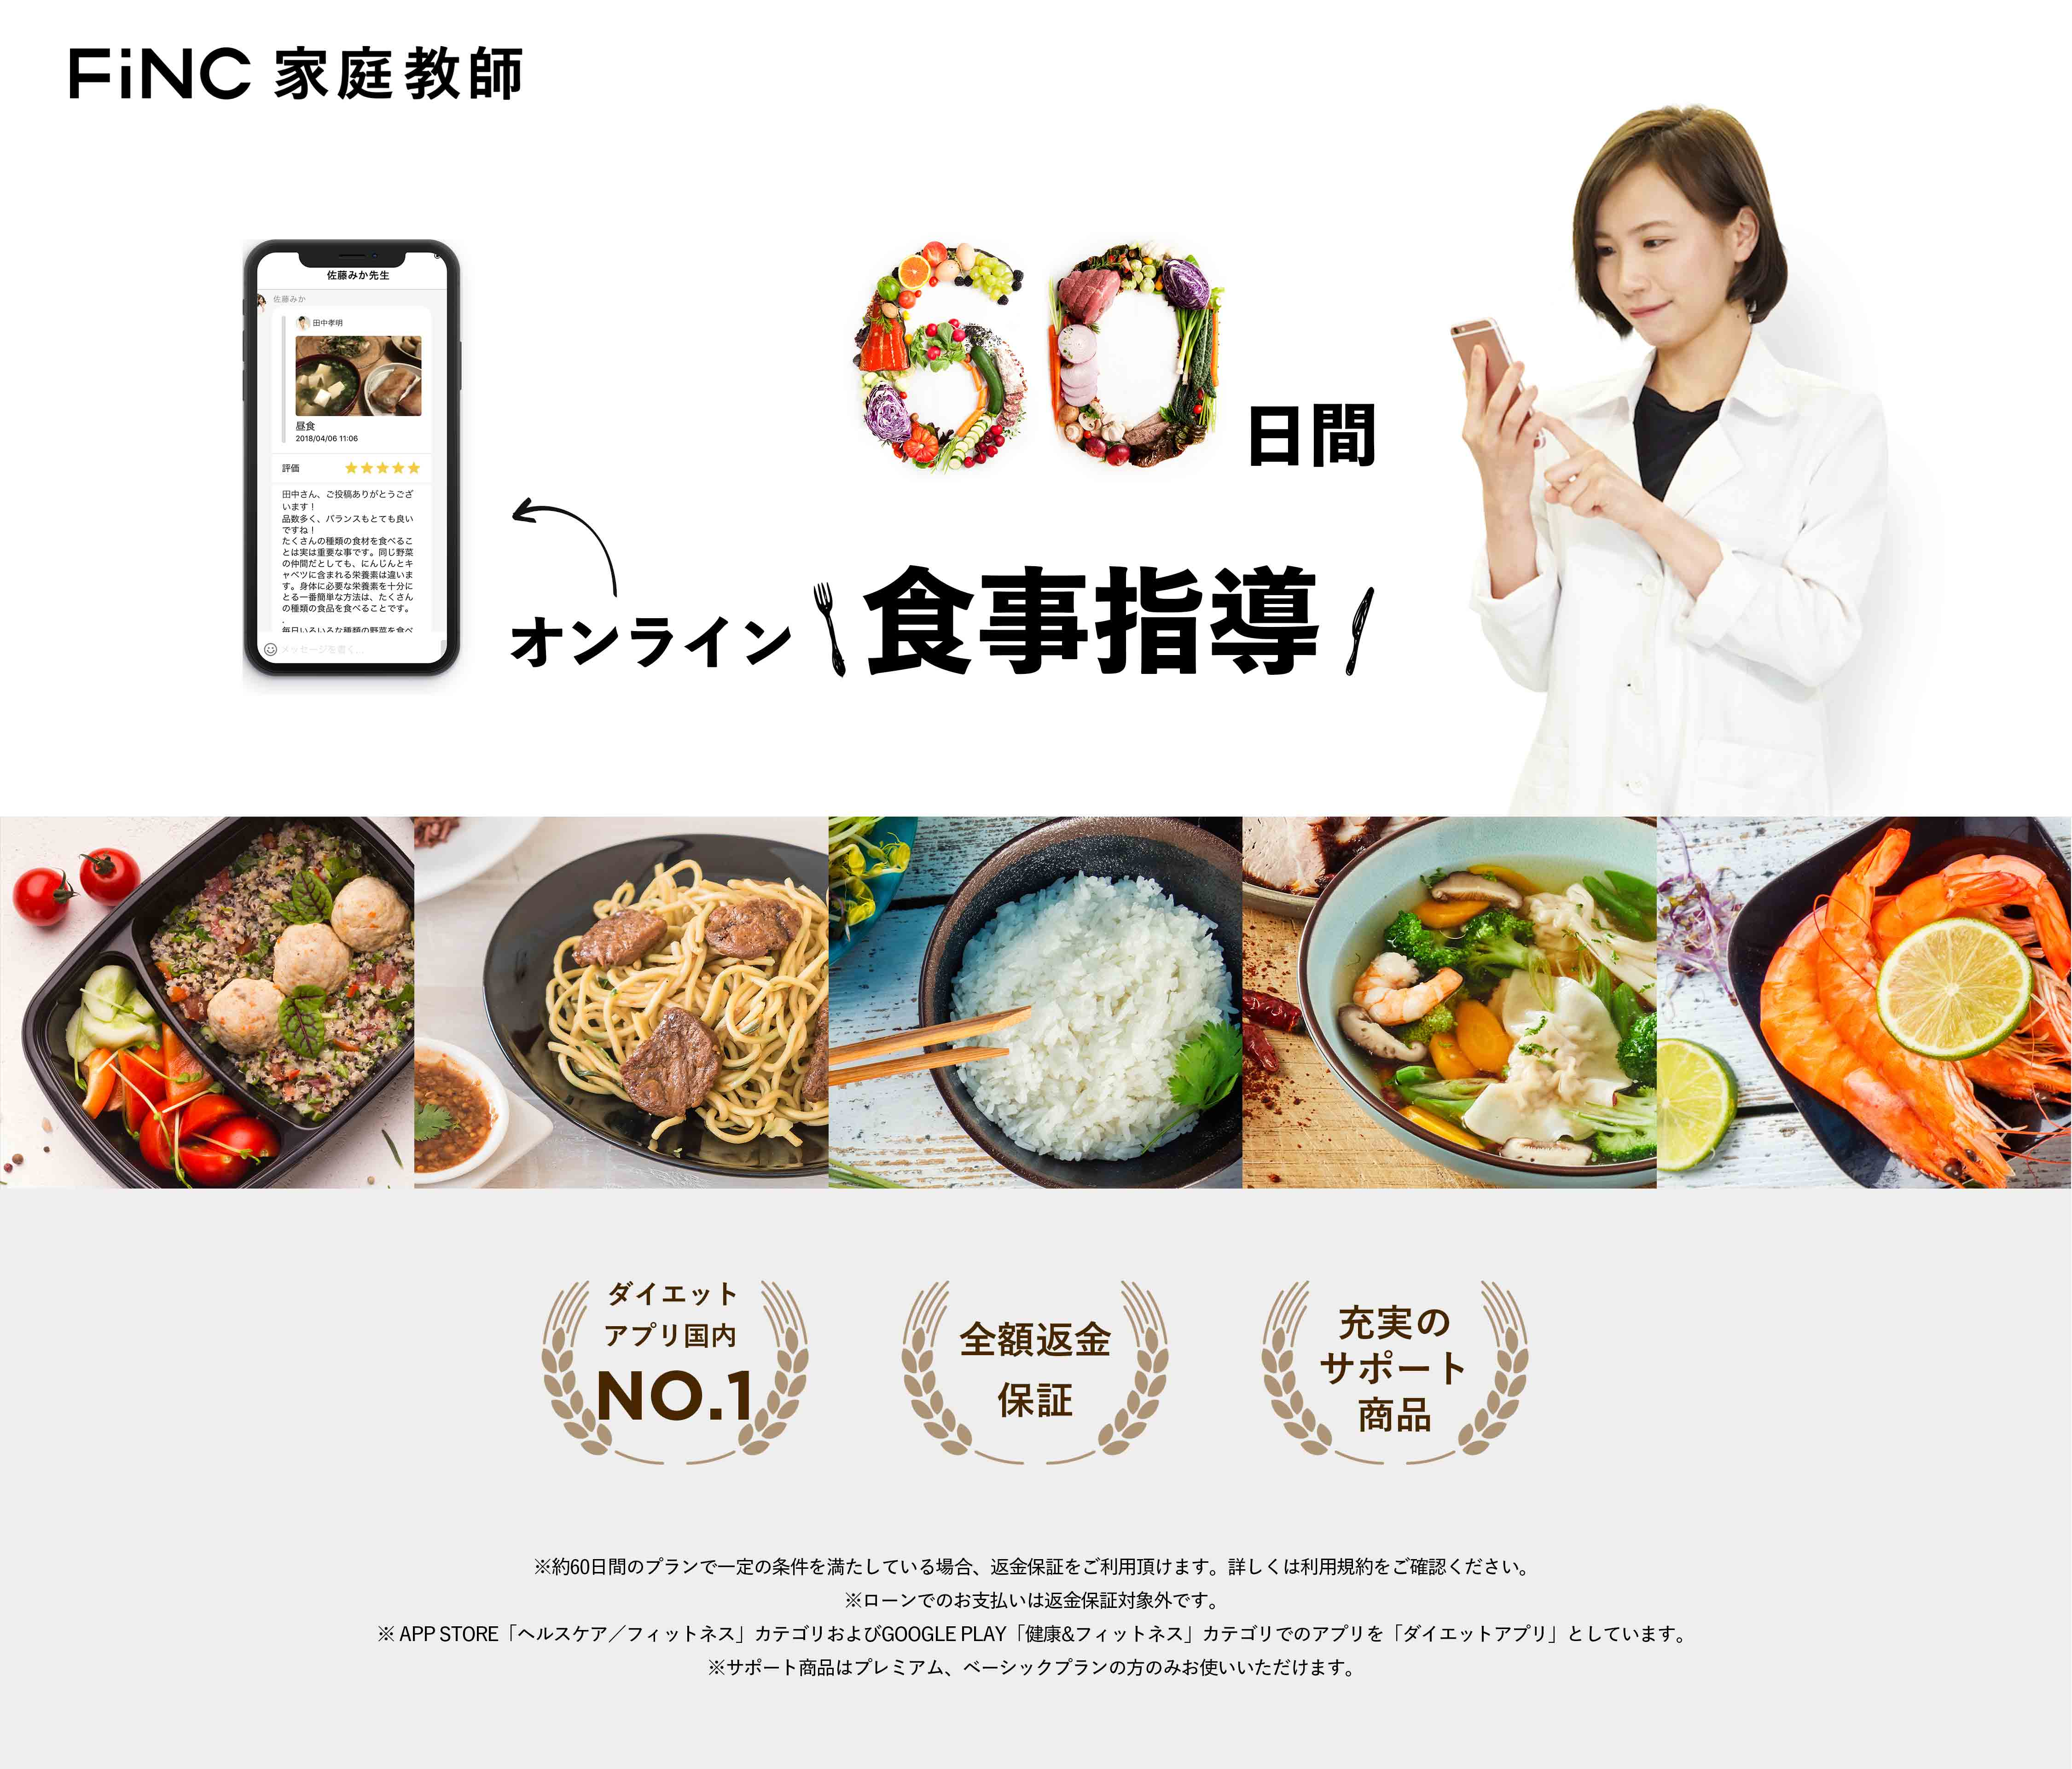 FINC ダイエット家庭教師 人生最後のダイエットをあなたに